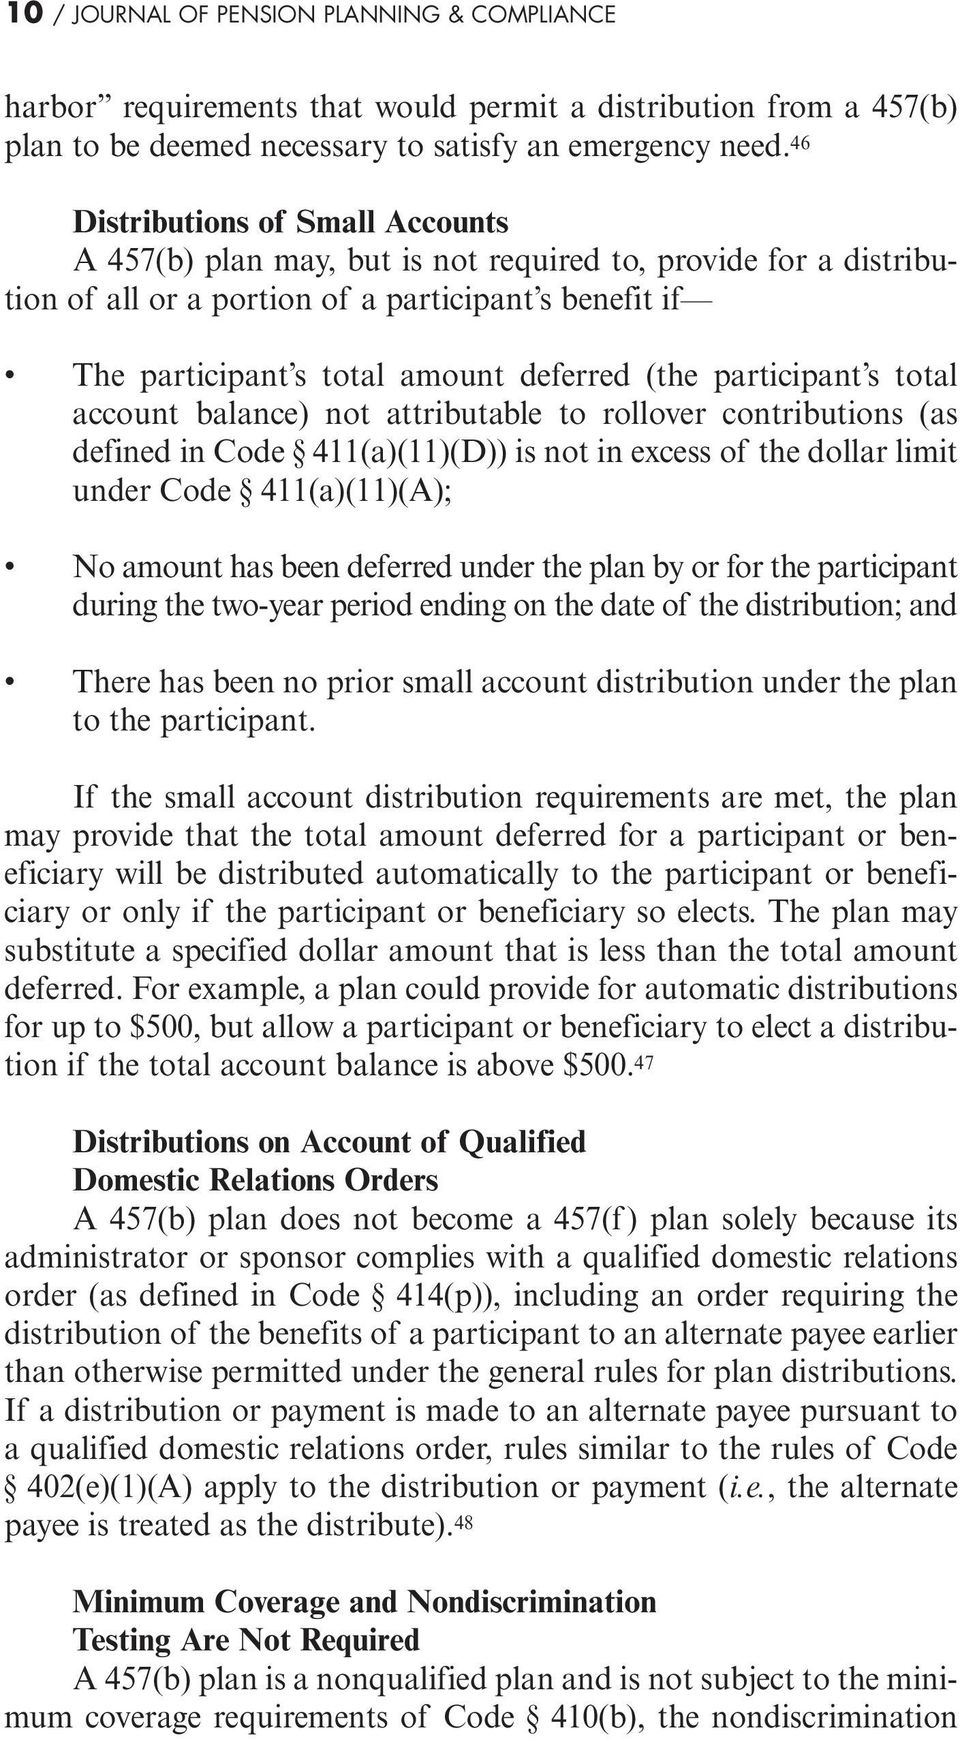 participant s total account balance) not attributable to rollover contributions (as defined in Code 411(a)(11)(D)) is not in excess of the dollar limit under Code 411(a)(11)(A); No amount has been